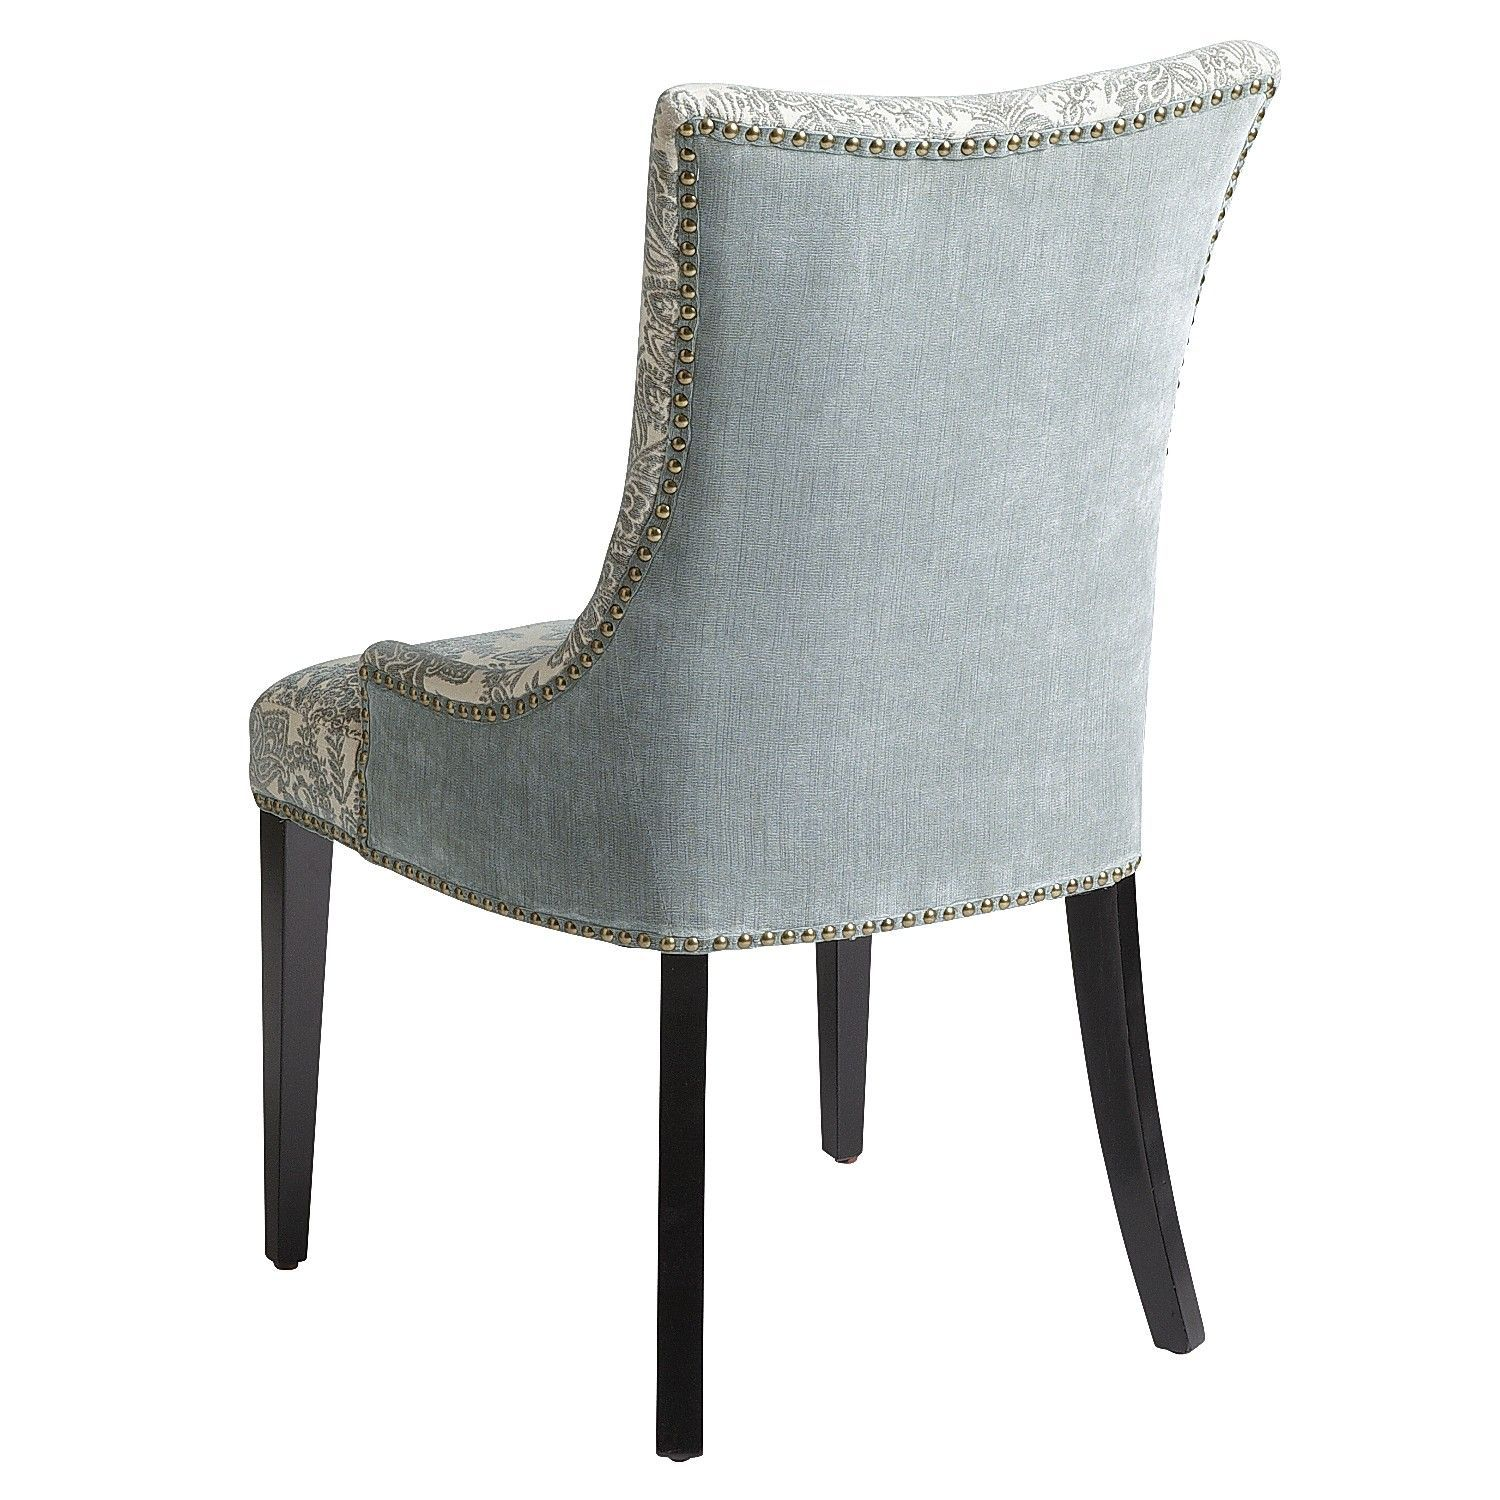 Adelle dining chair blue damask pier 1 imports colored dining chairs colorful chairs